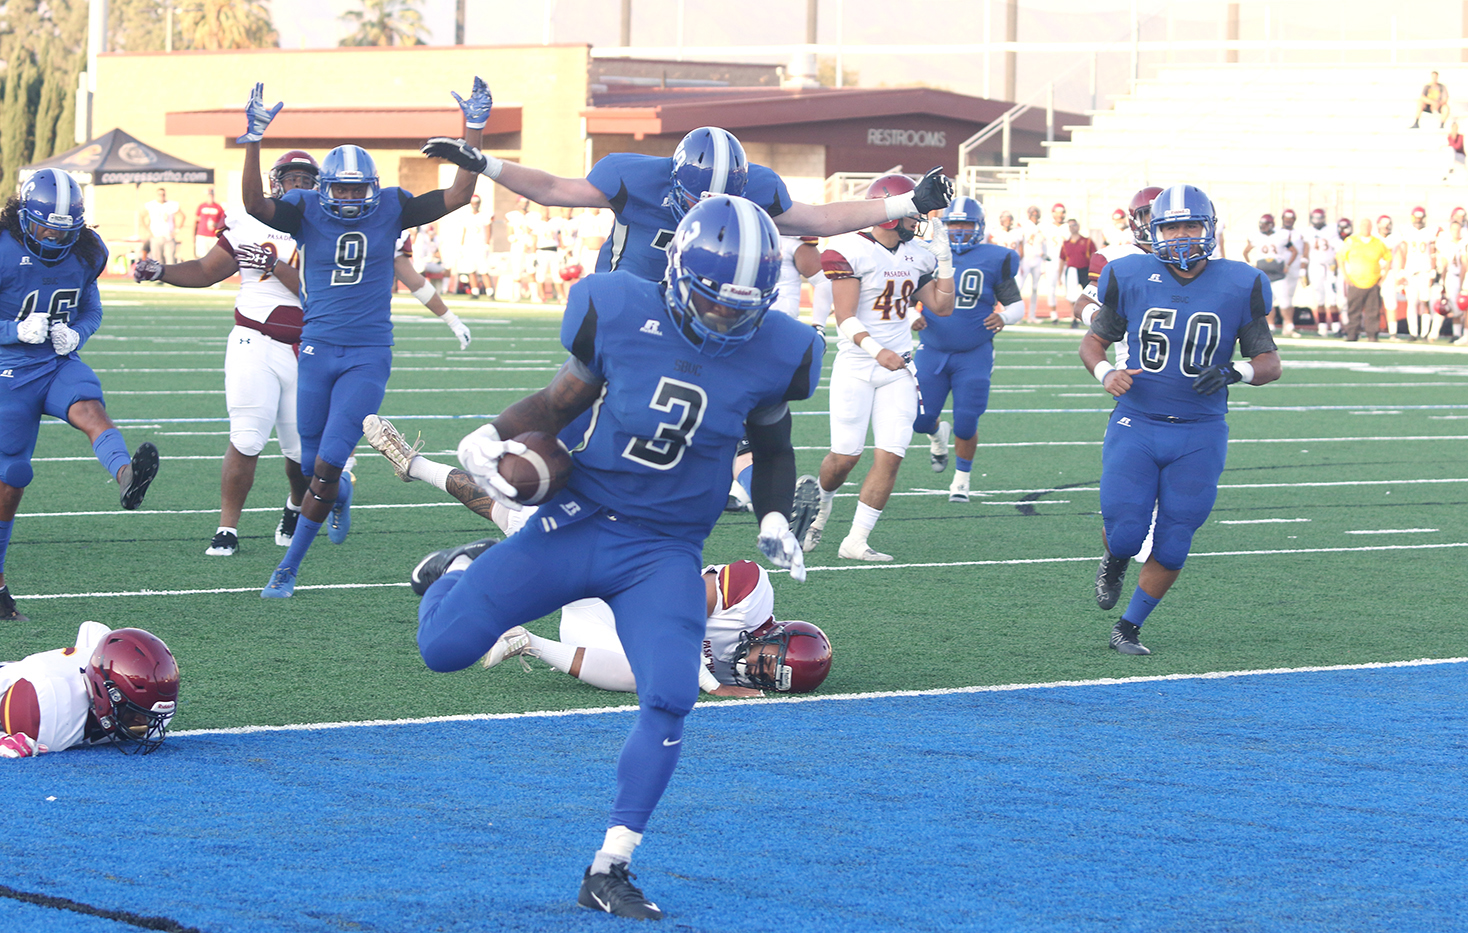 SBVC Honors Past, Looks to Future with Victory over Pasadena